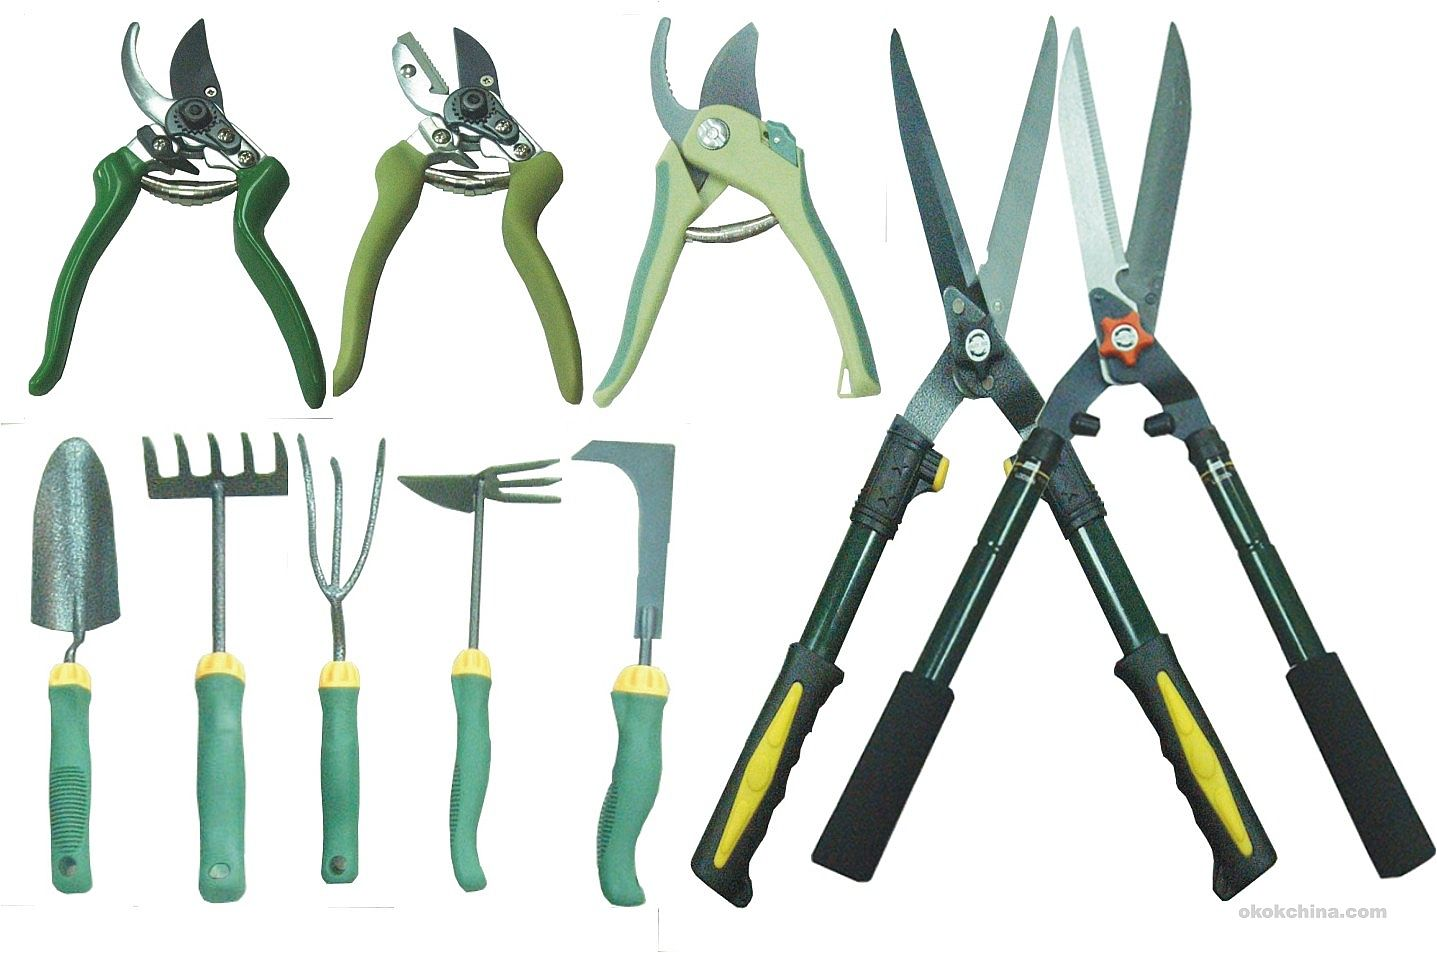 Gardening tools and compost advice garden tools and basic for Gardening tools you must have